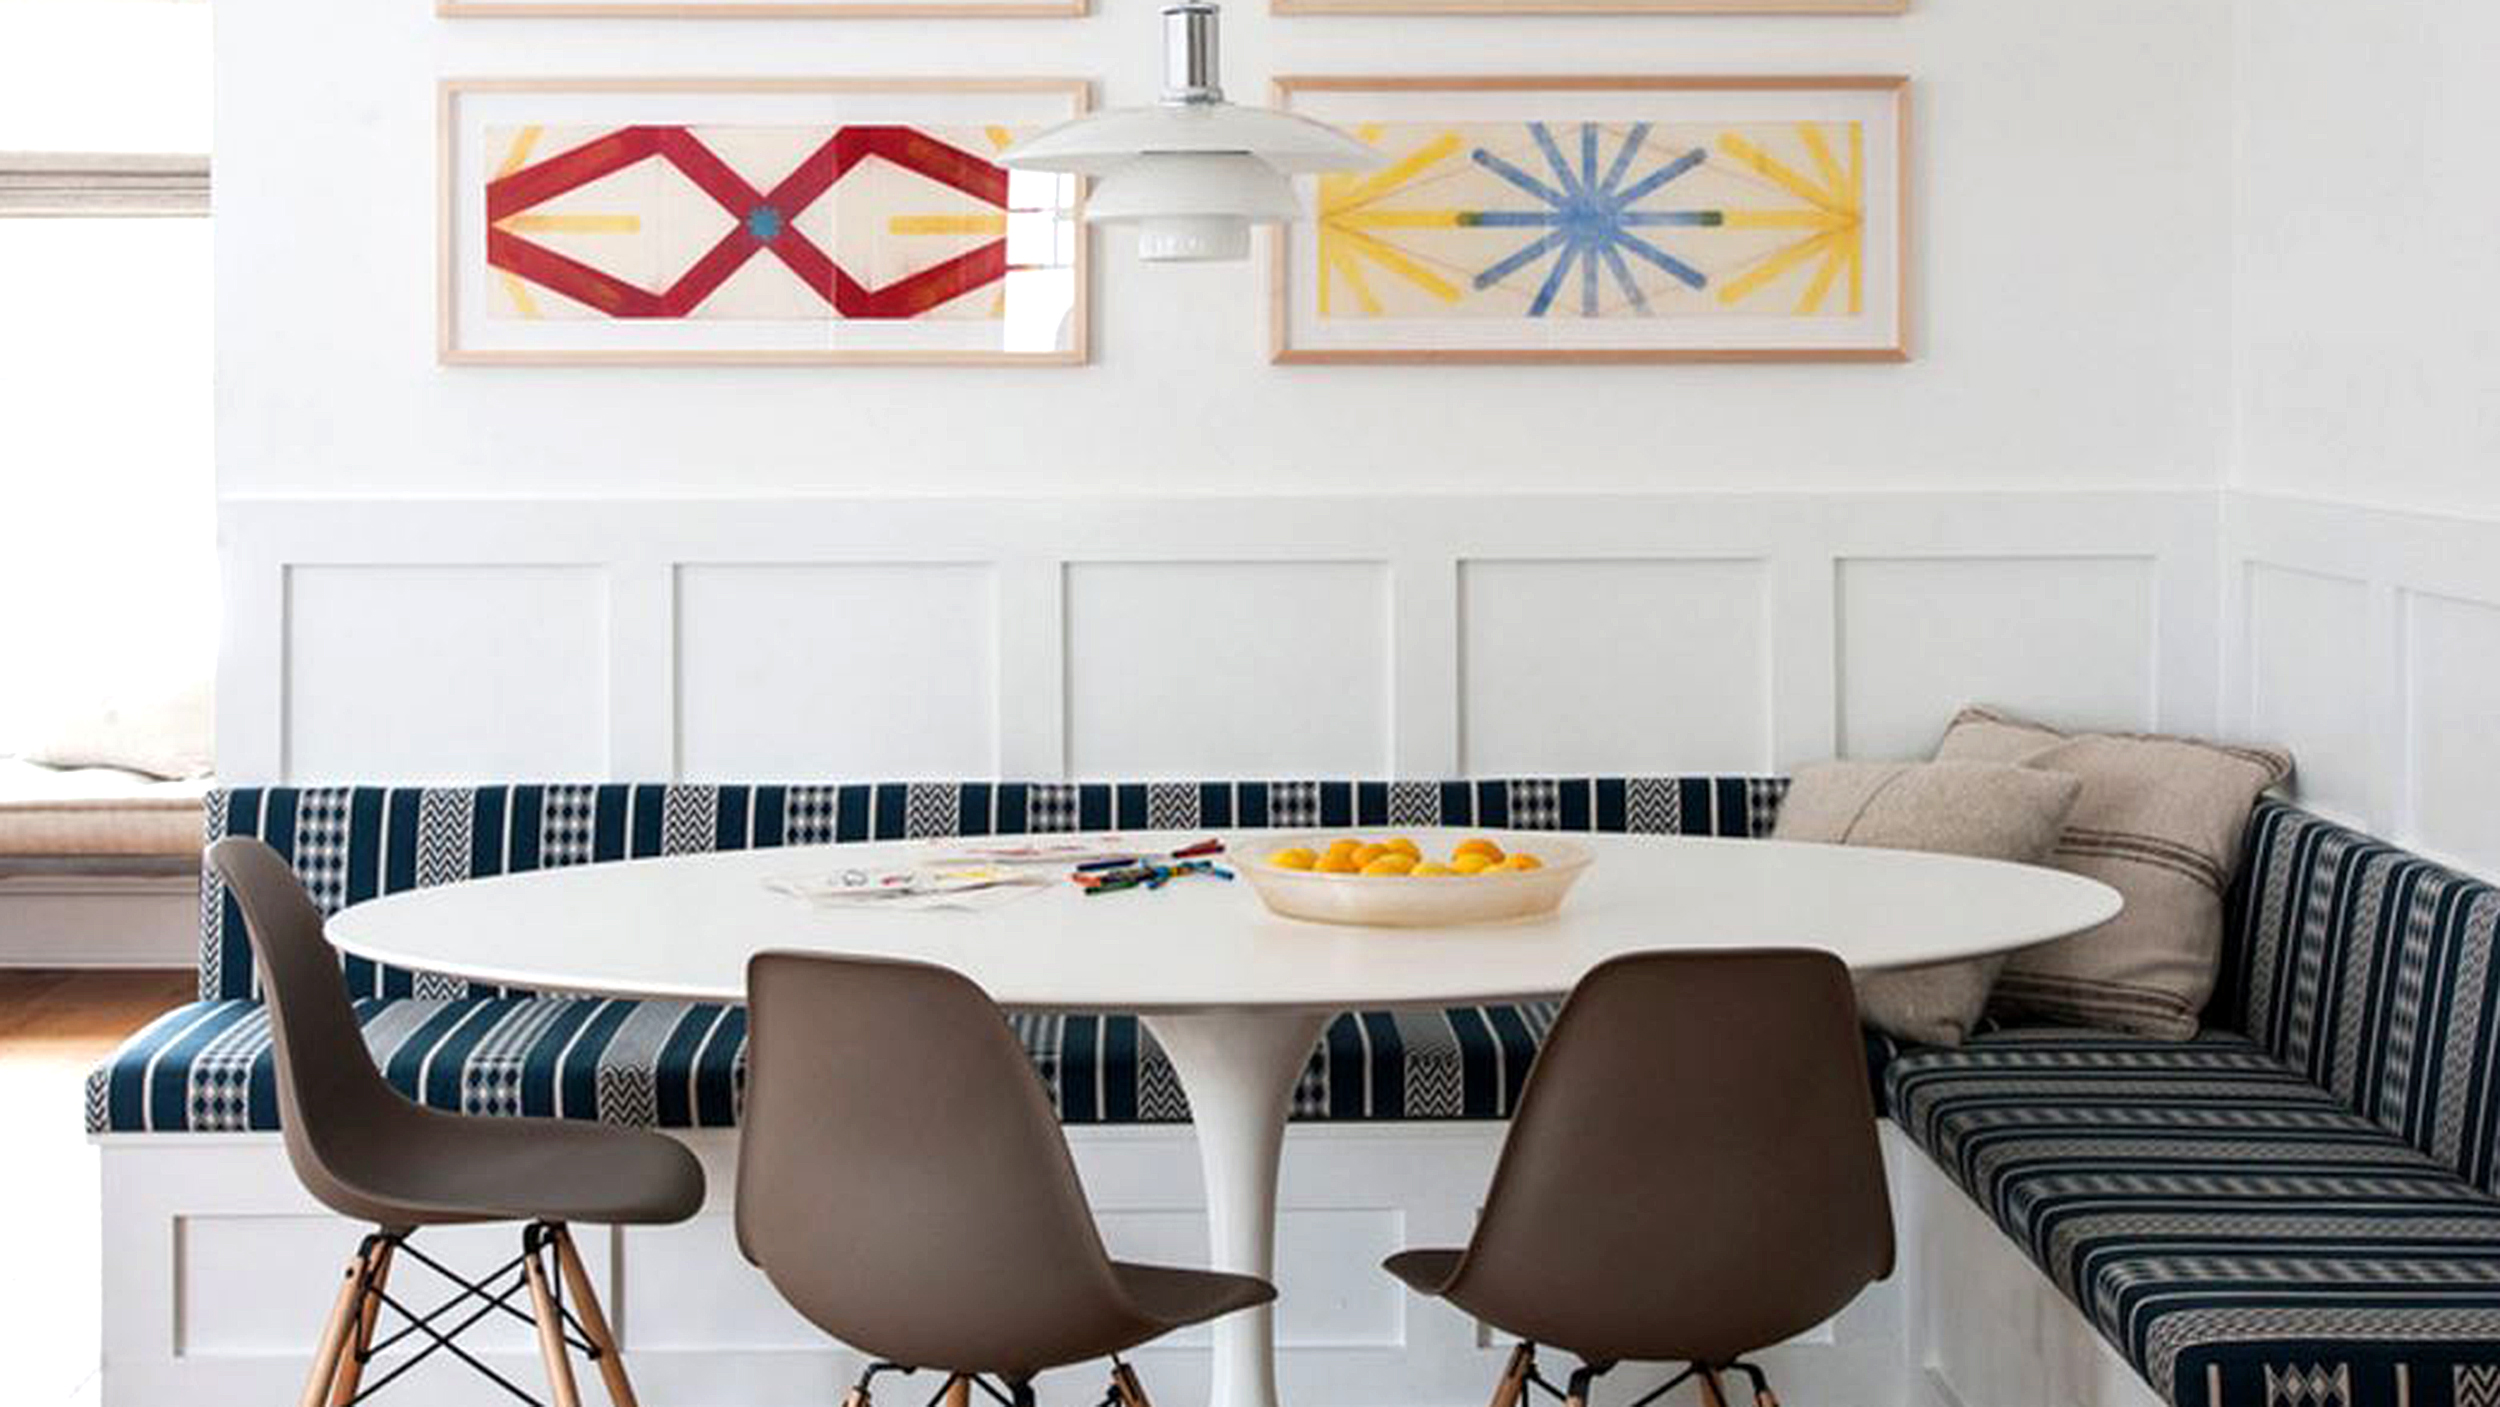 Add a banquette for an instant dining area in your kitchen   today.com